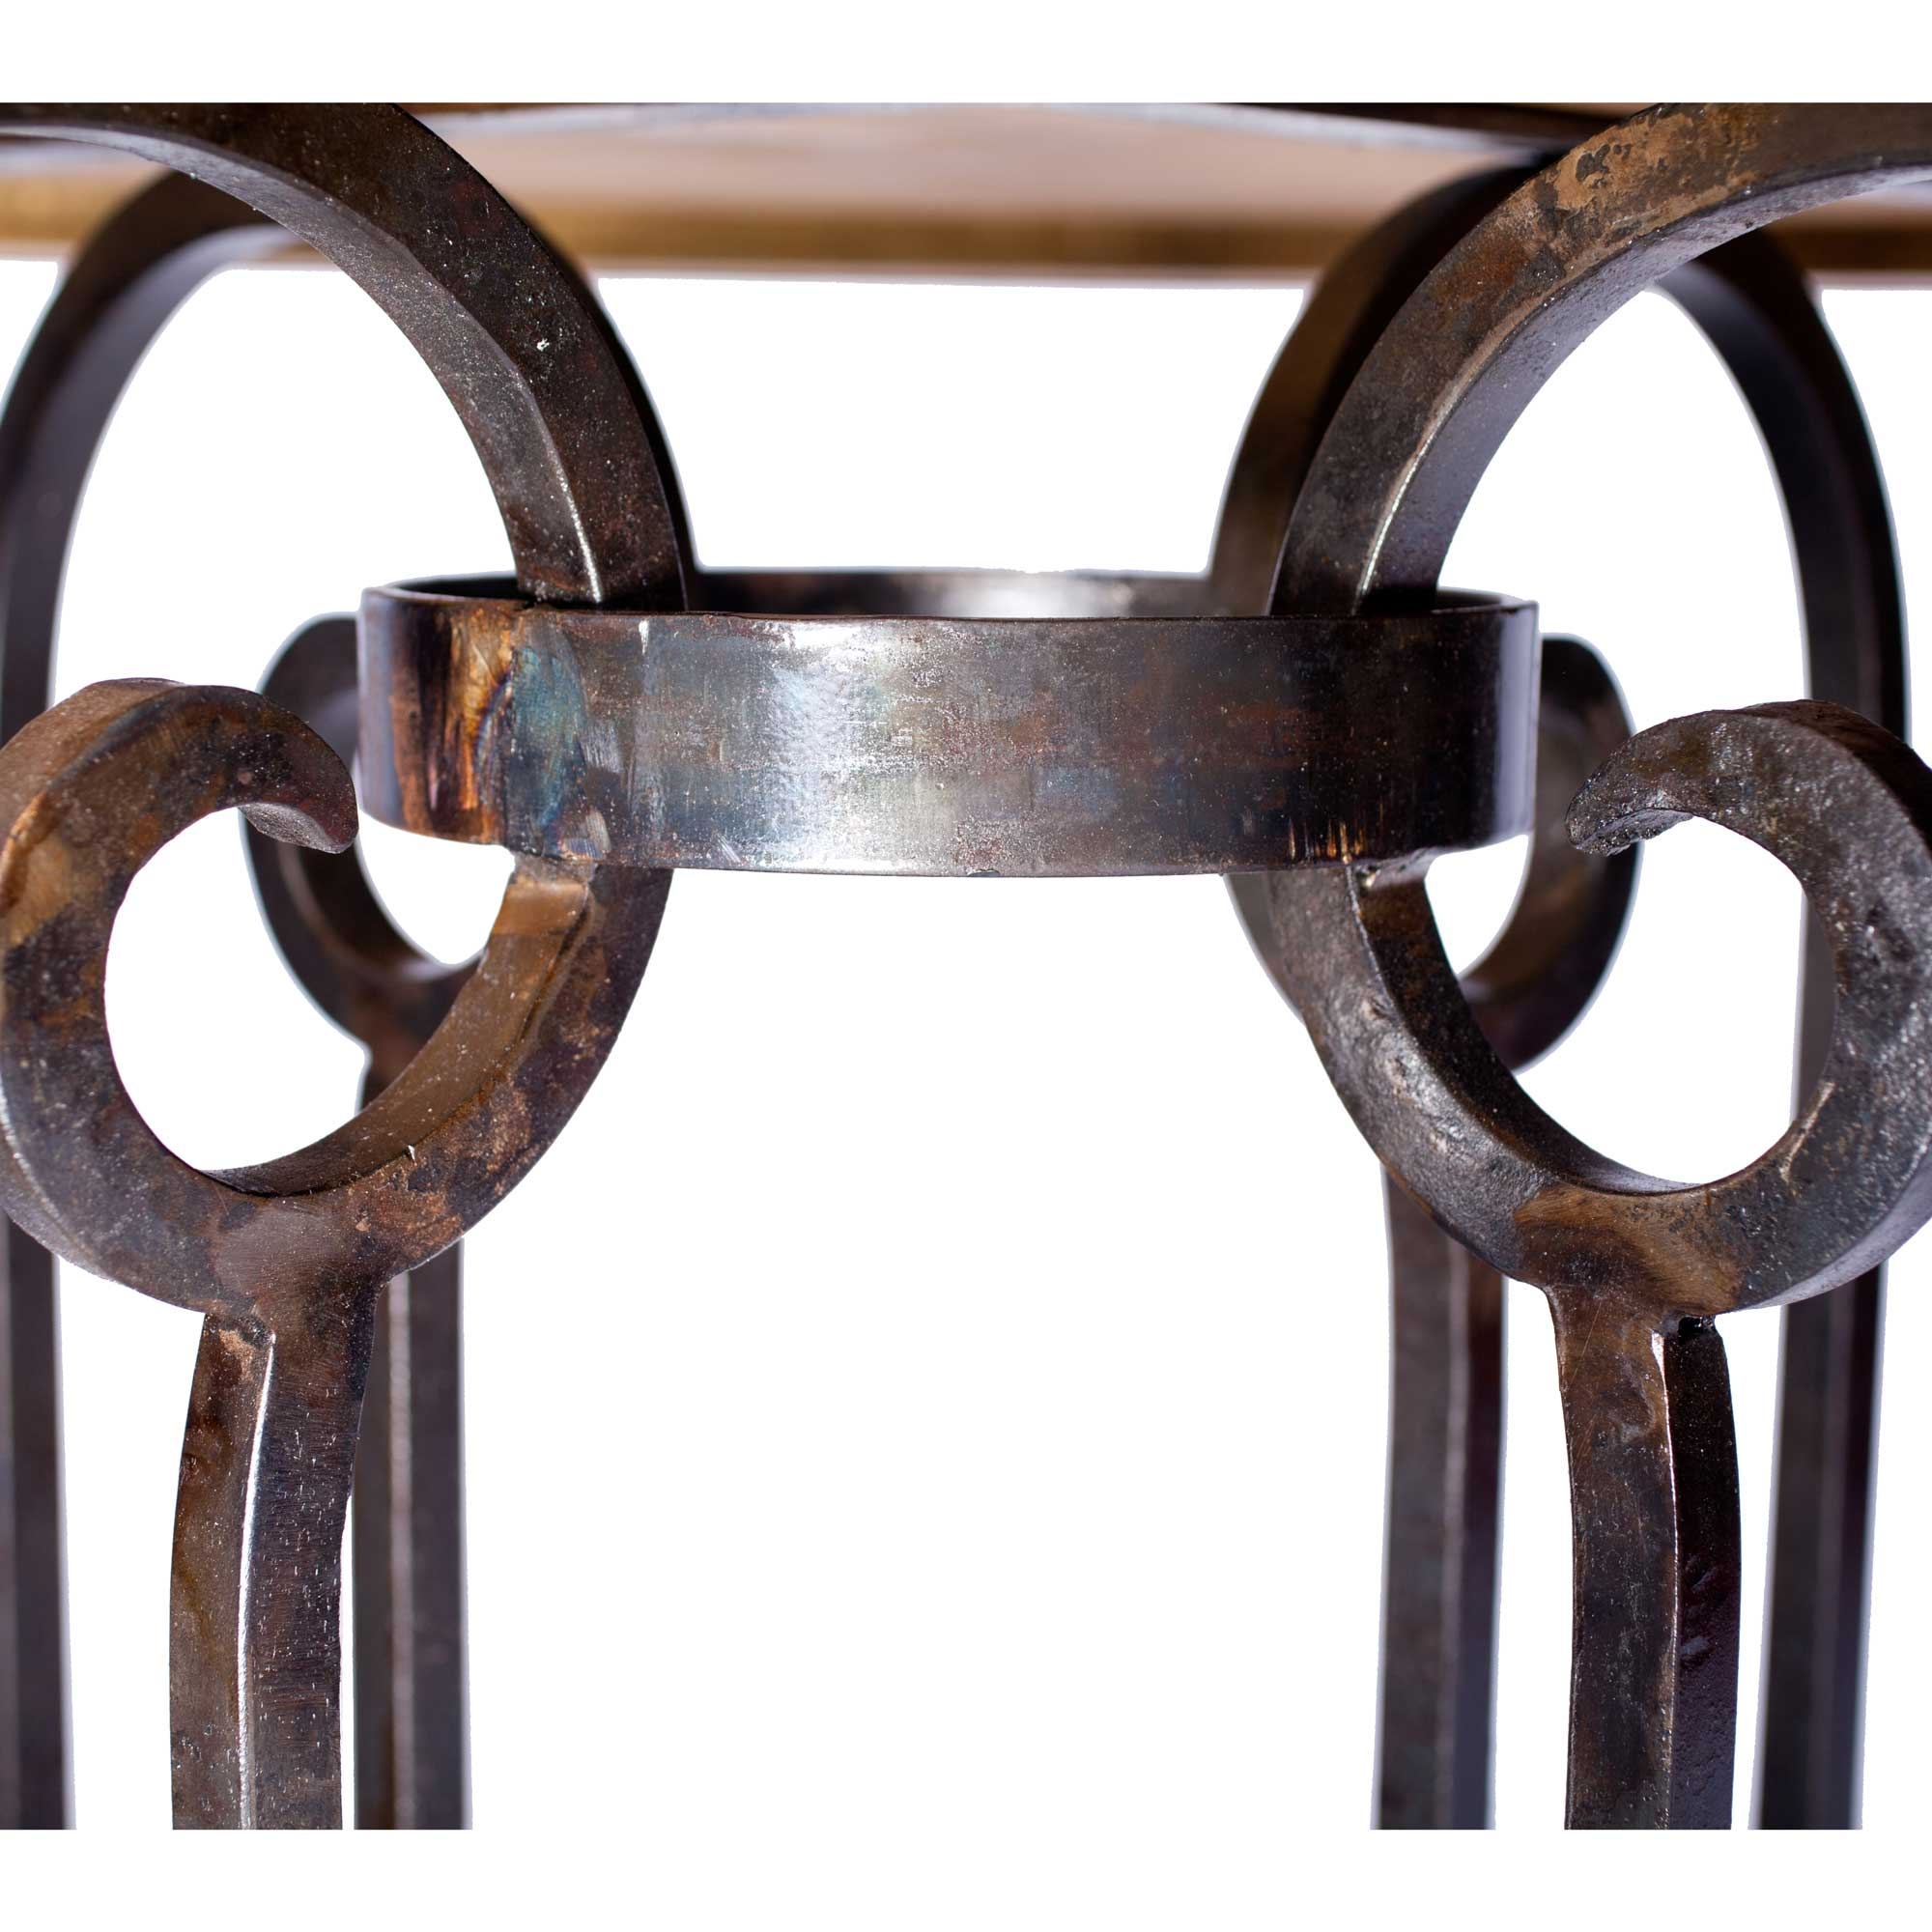 "Curled Leg Iron Dining Table with 54"" Round Hammered Zinc Top"